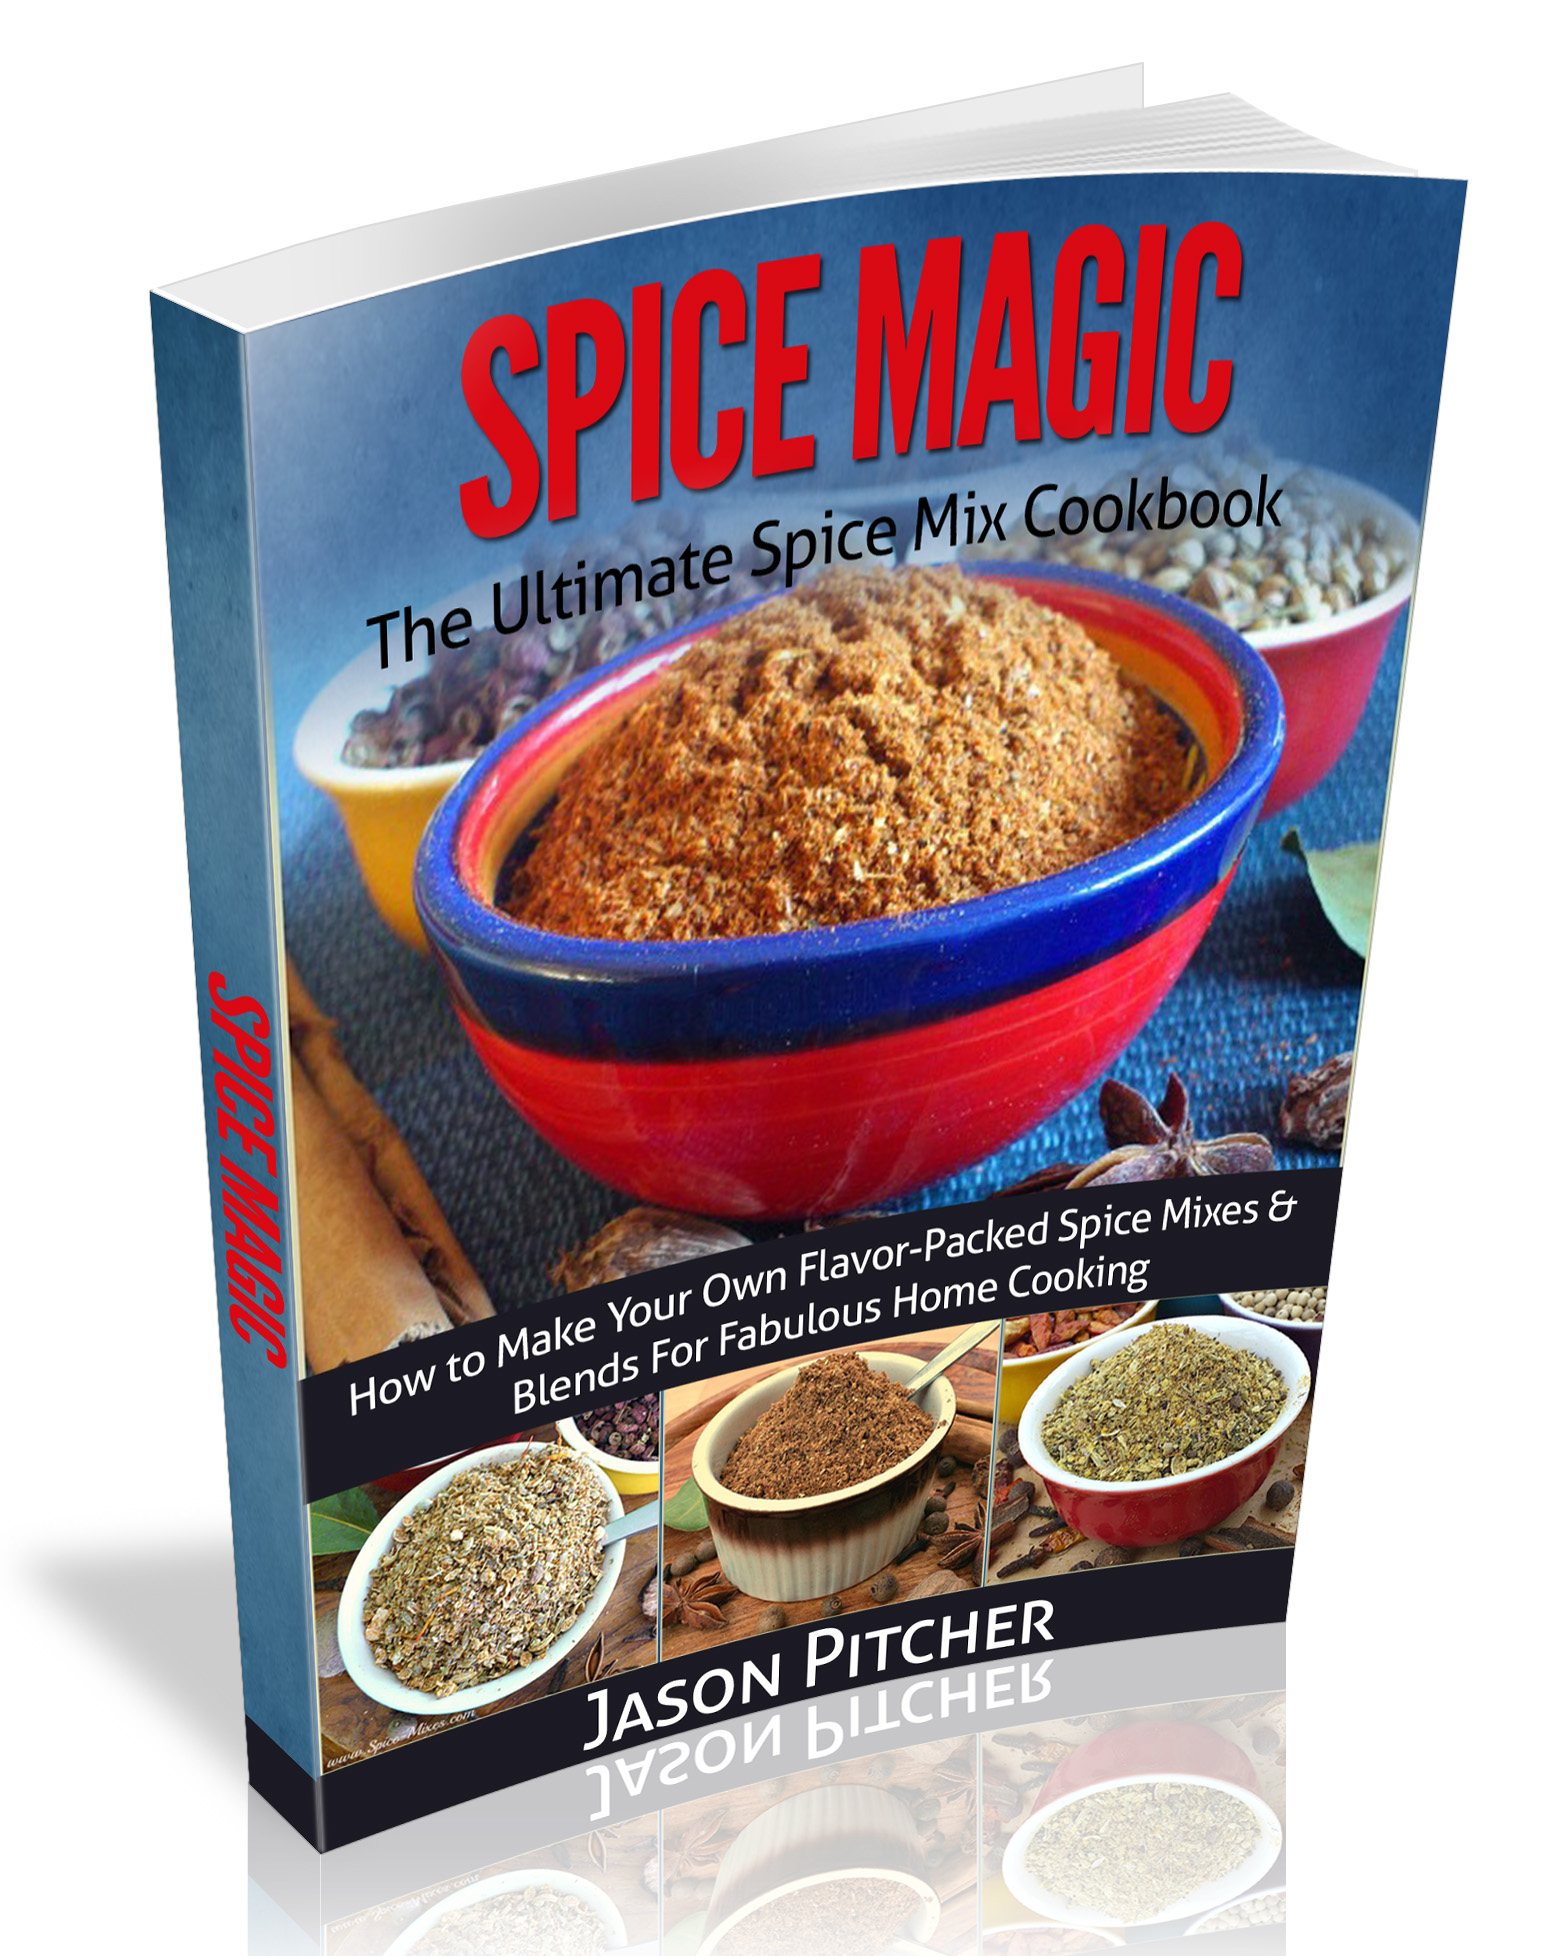 Spice magic recipe book 100 of your favourite spice mix recipes your flavour packed mix recipes today forumfinder Image collections